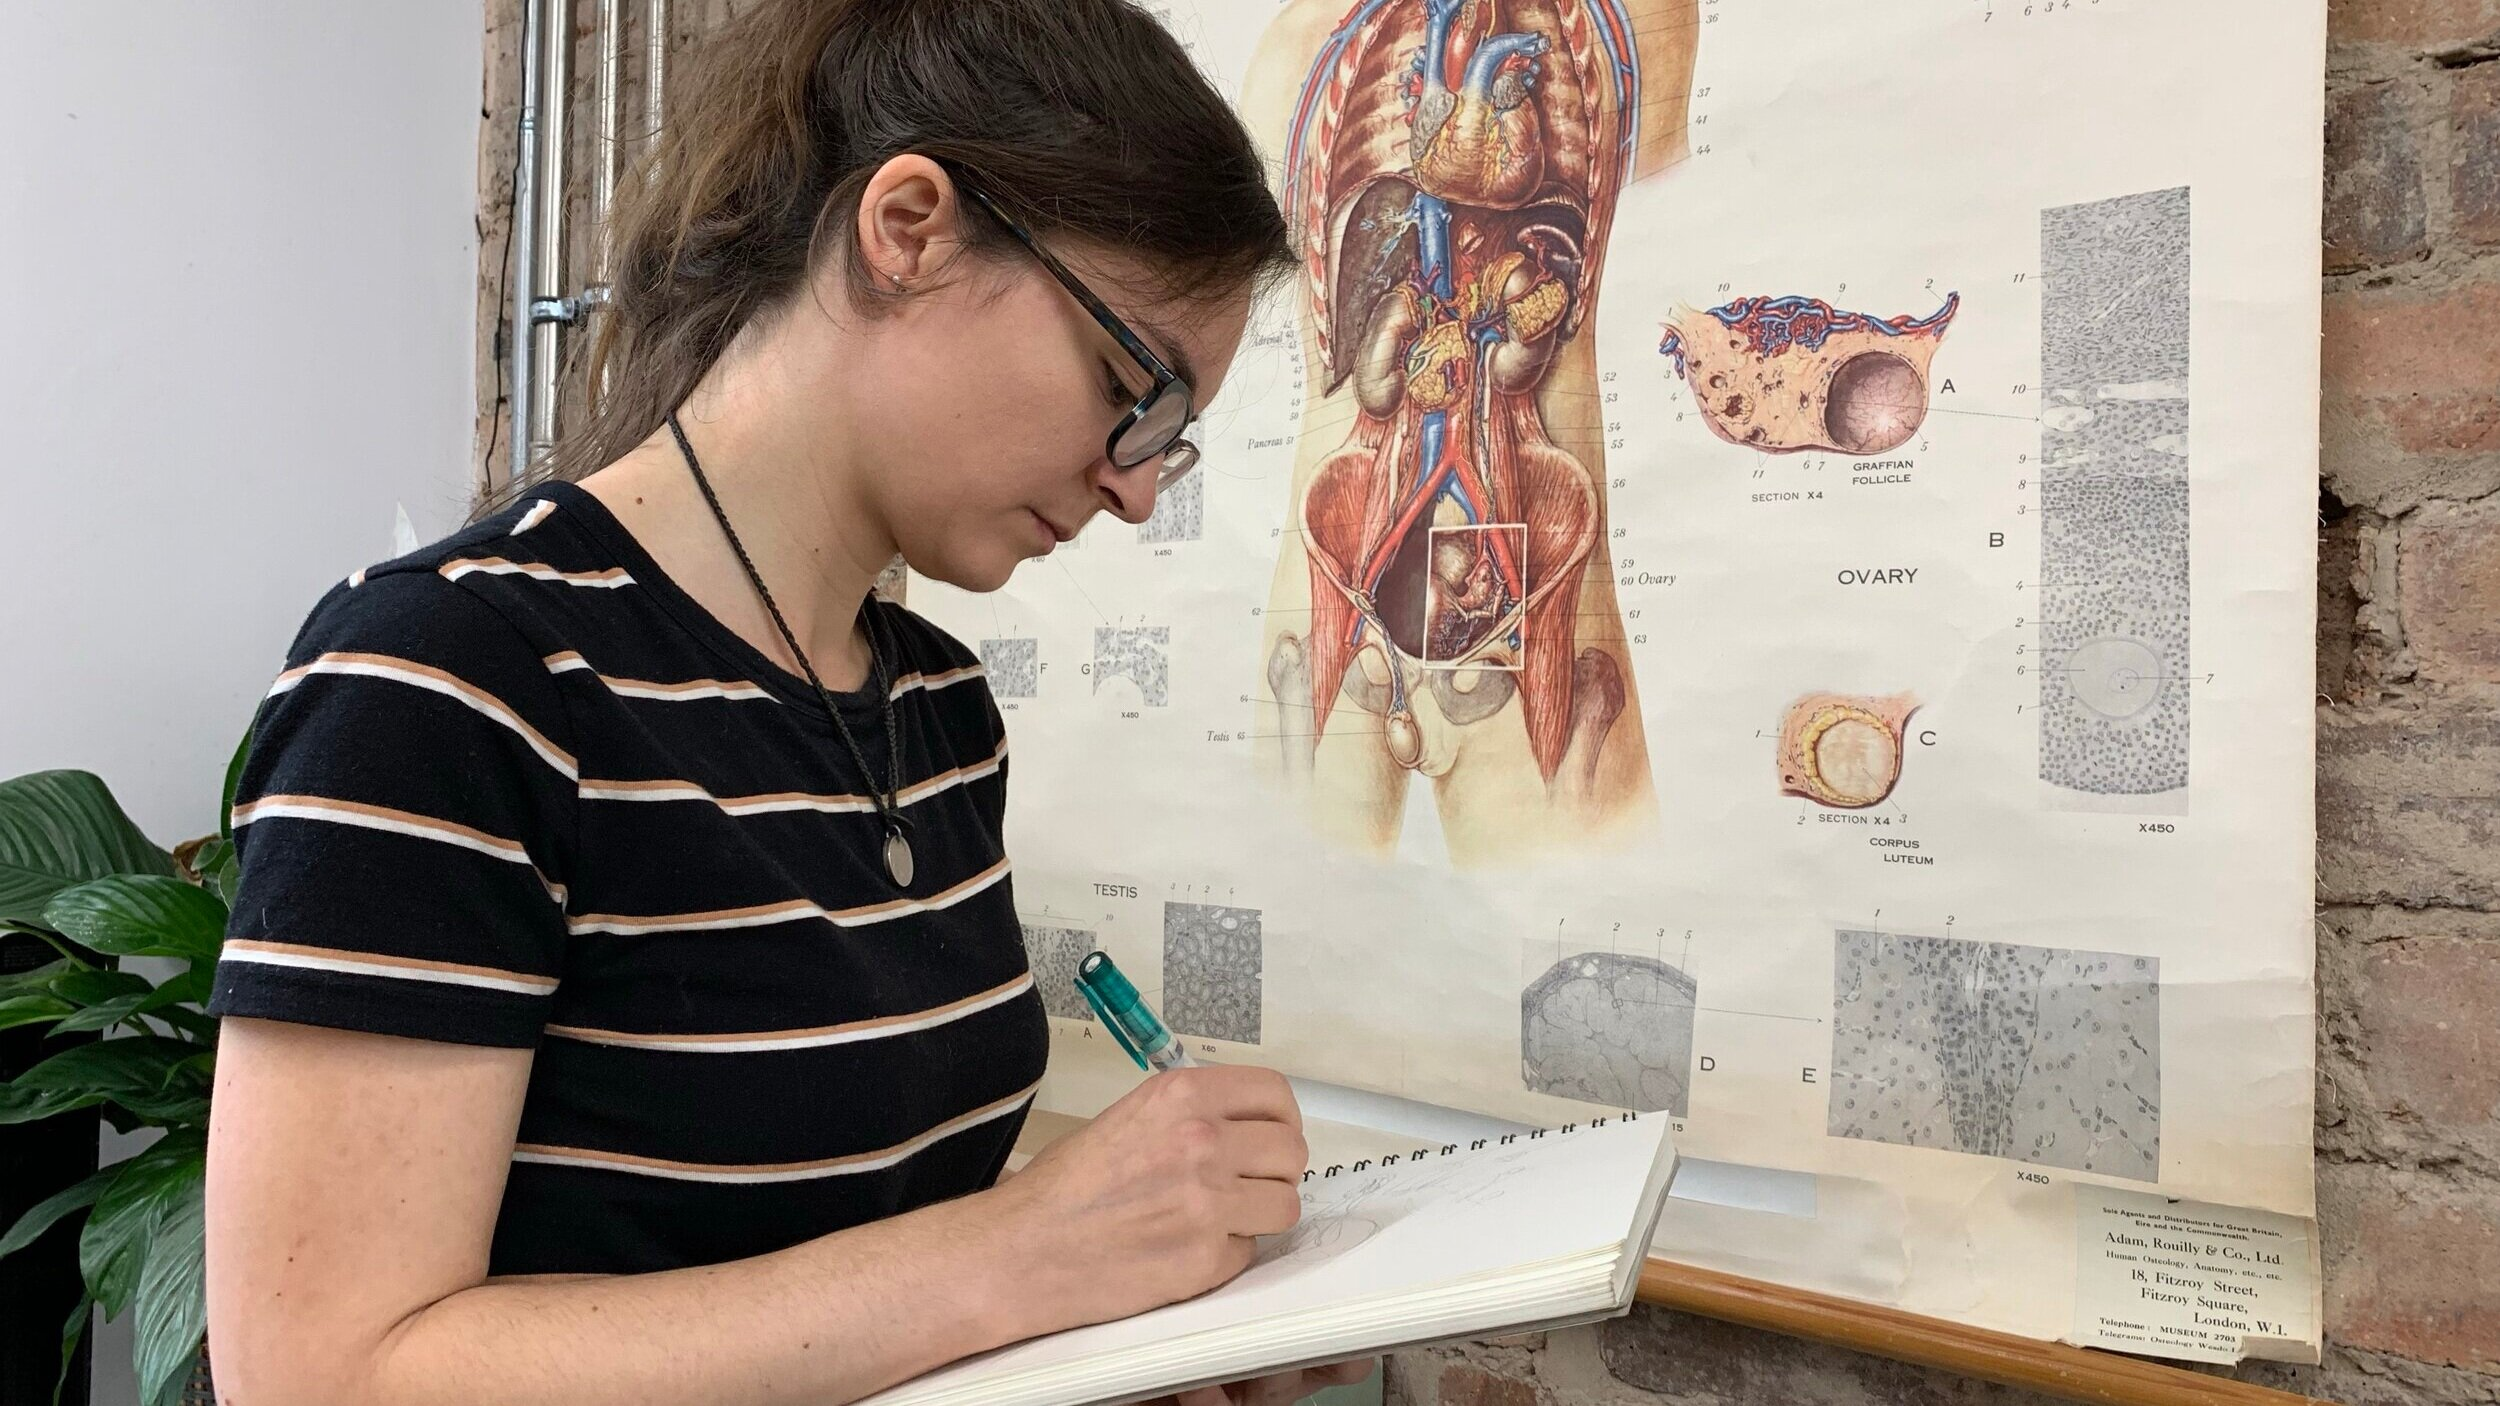 Susie went to the Anatomy Museum at the University of Glasgow to learn more and sketch infant anatomy for organ placement research